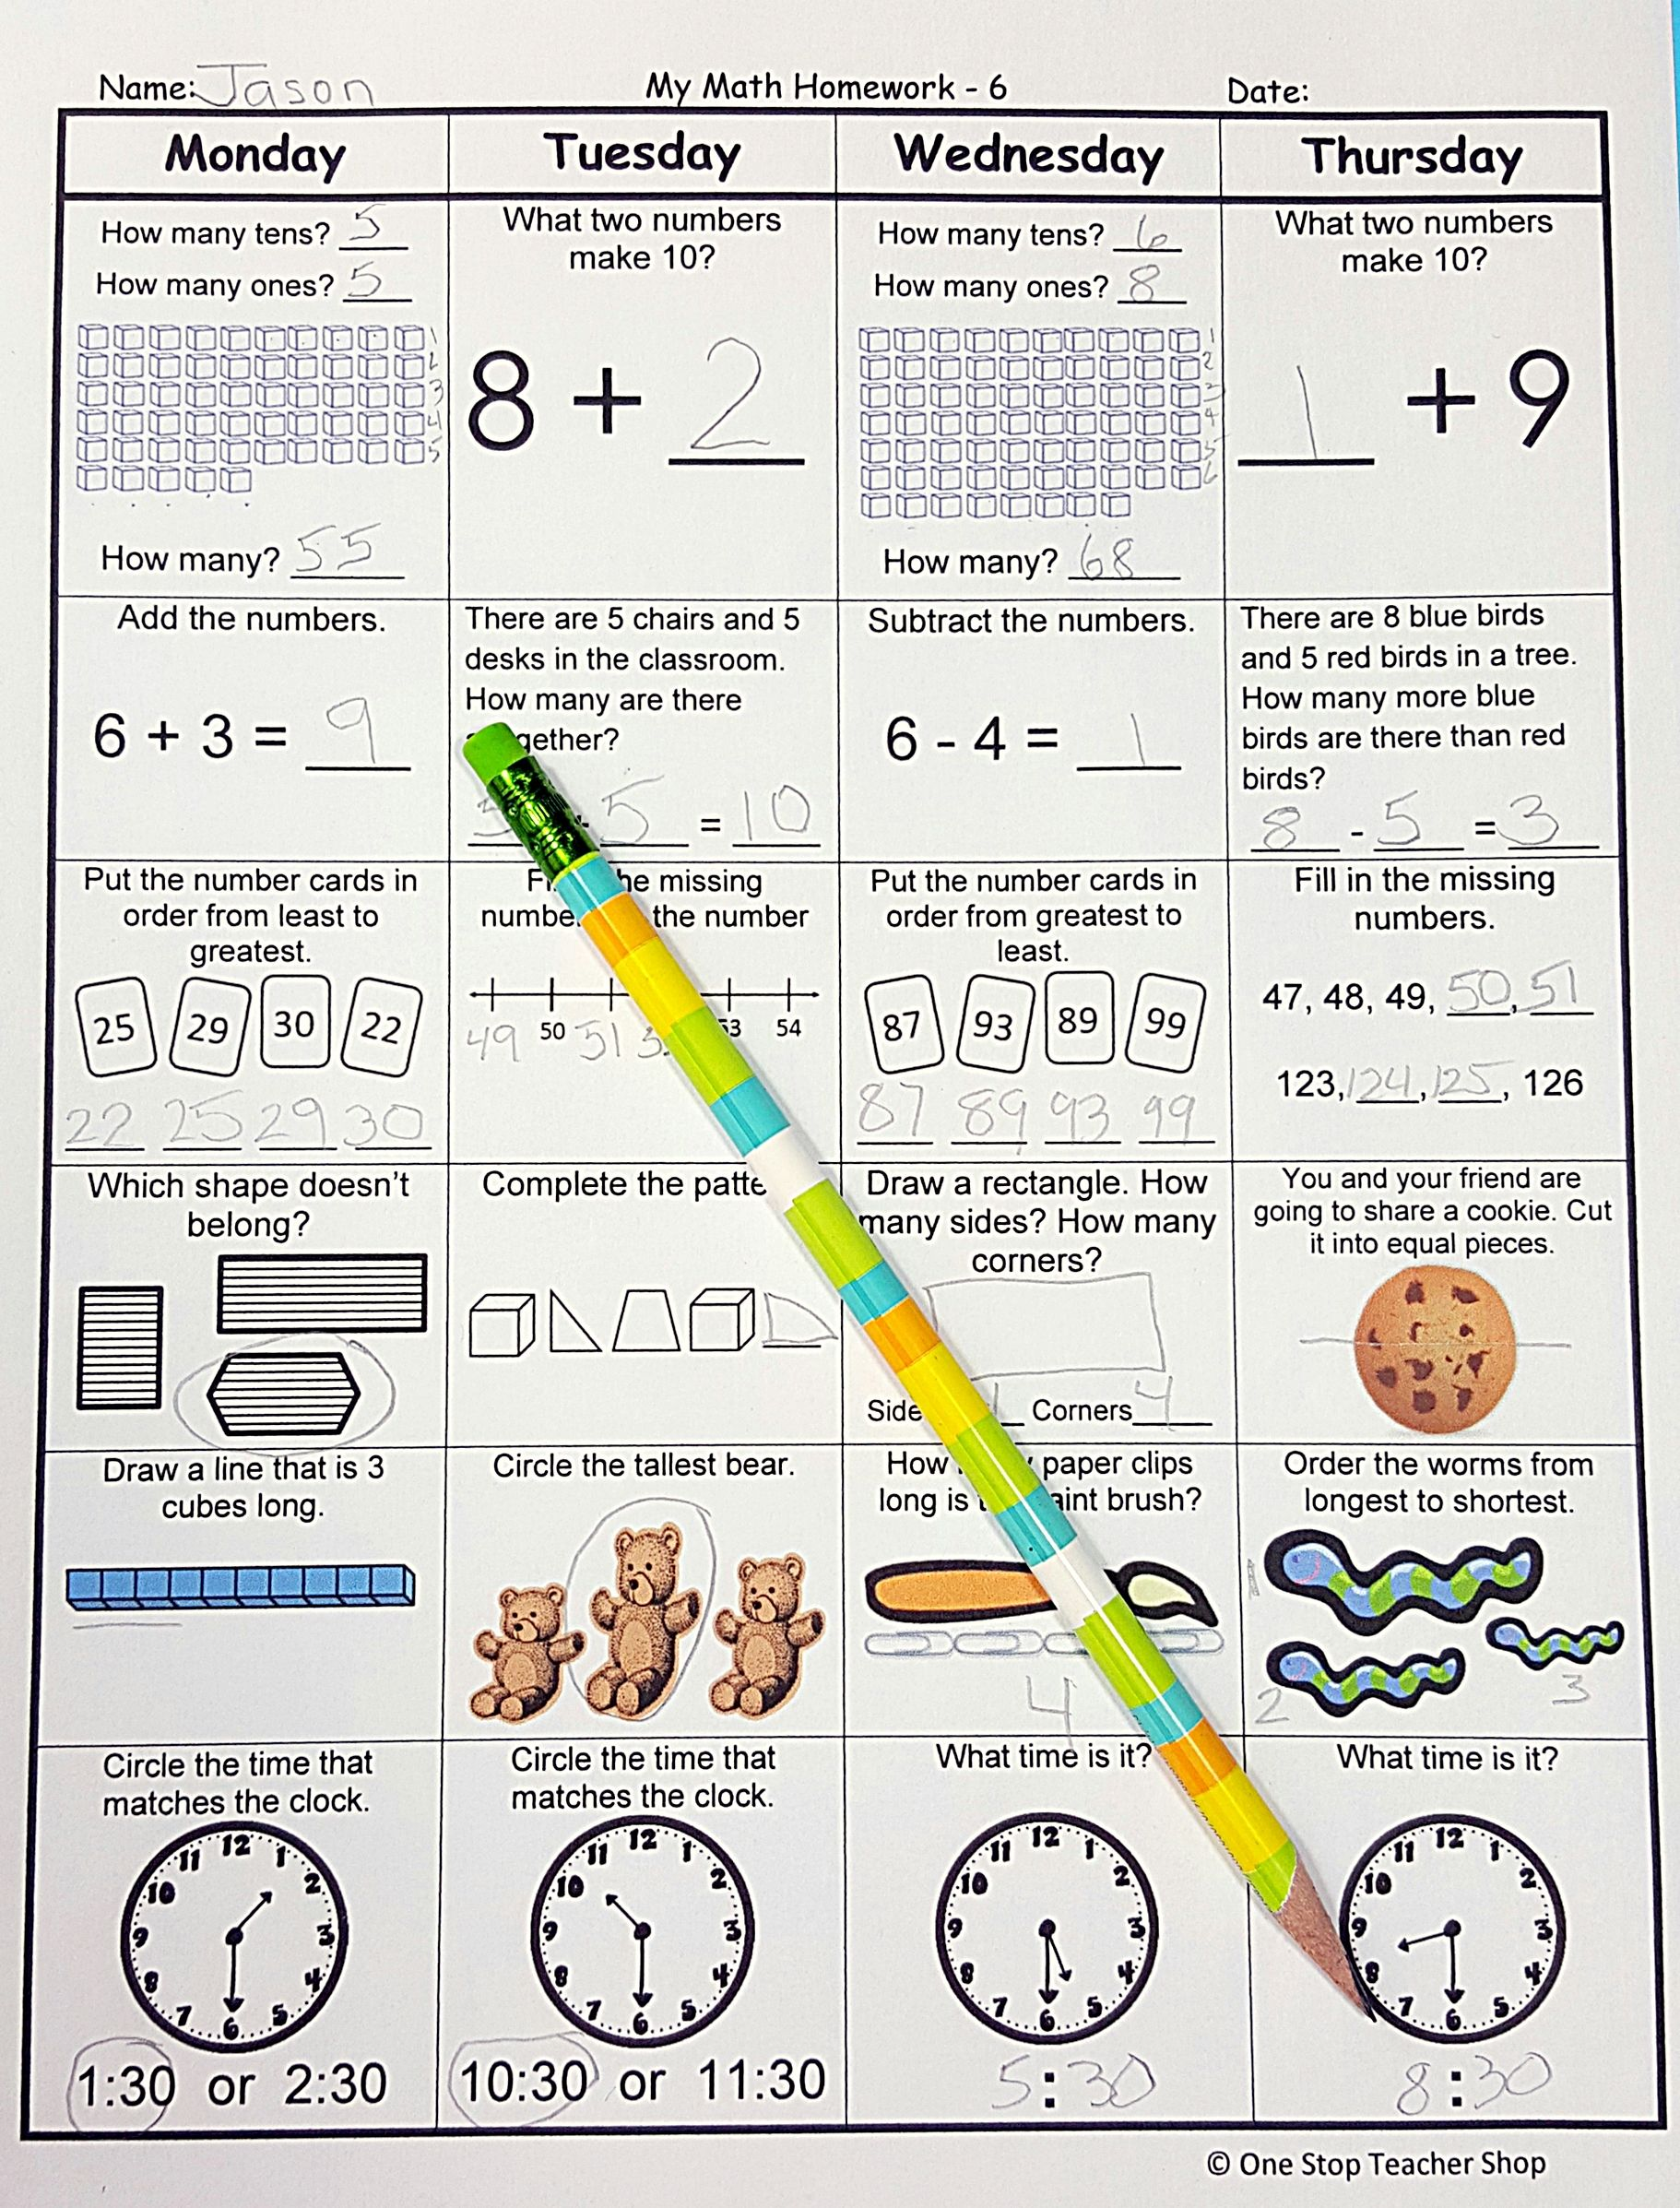 Worksheets Daily Morning Work 1st Grade 1st grade math spiral review homework morning work